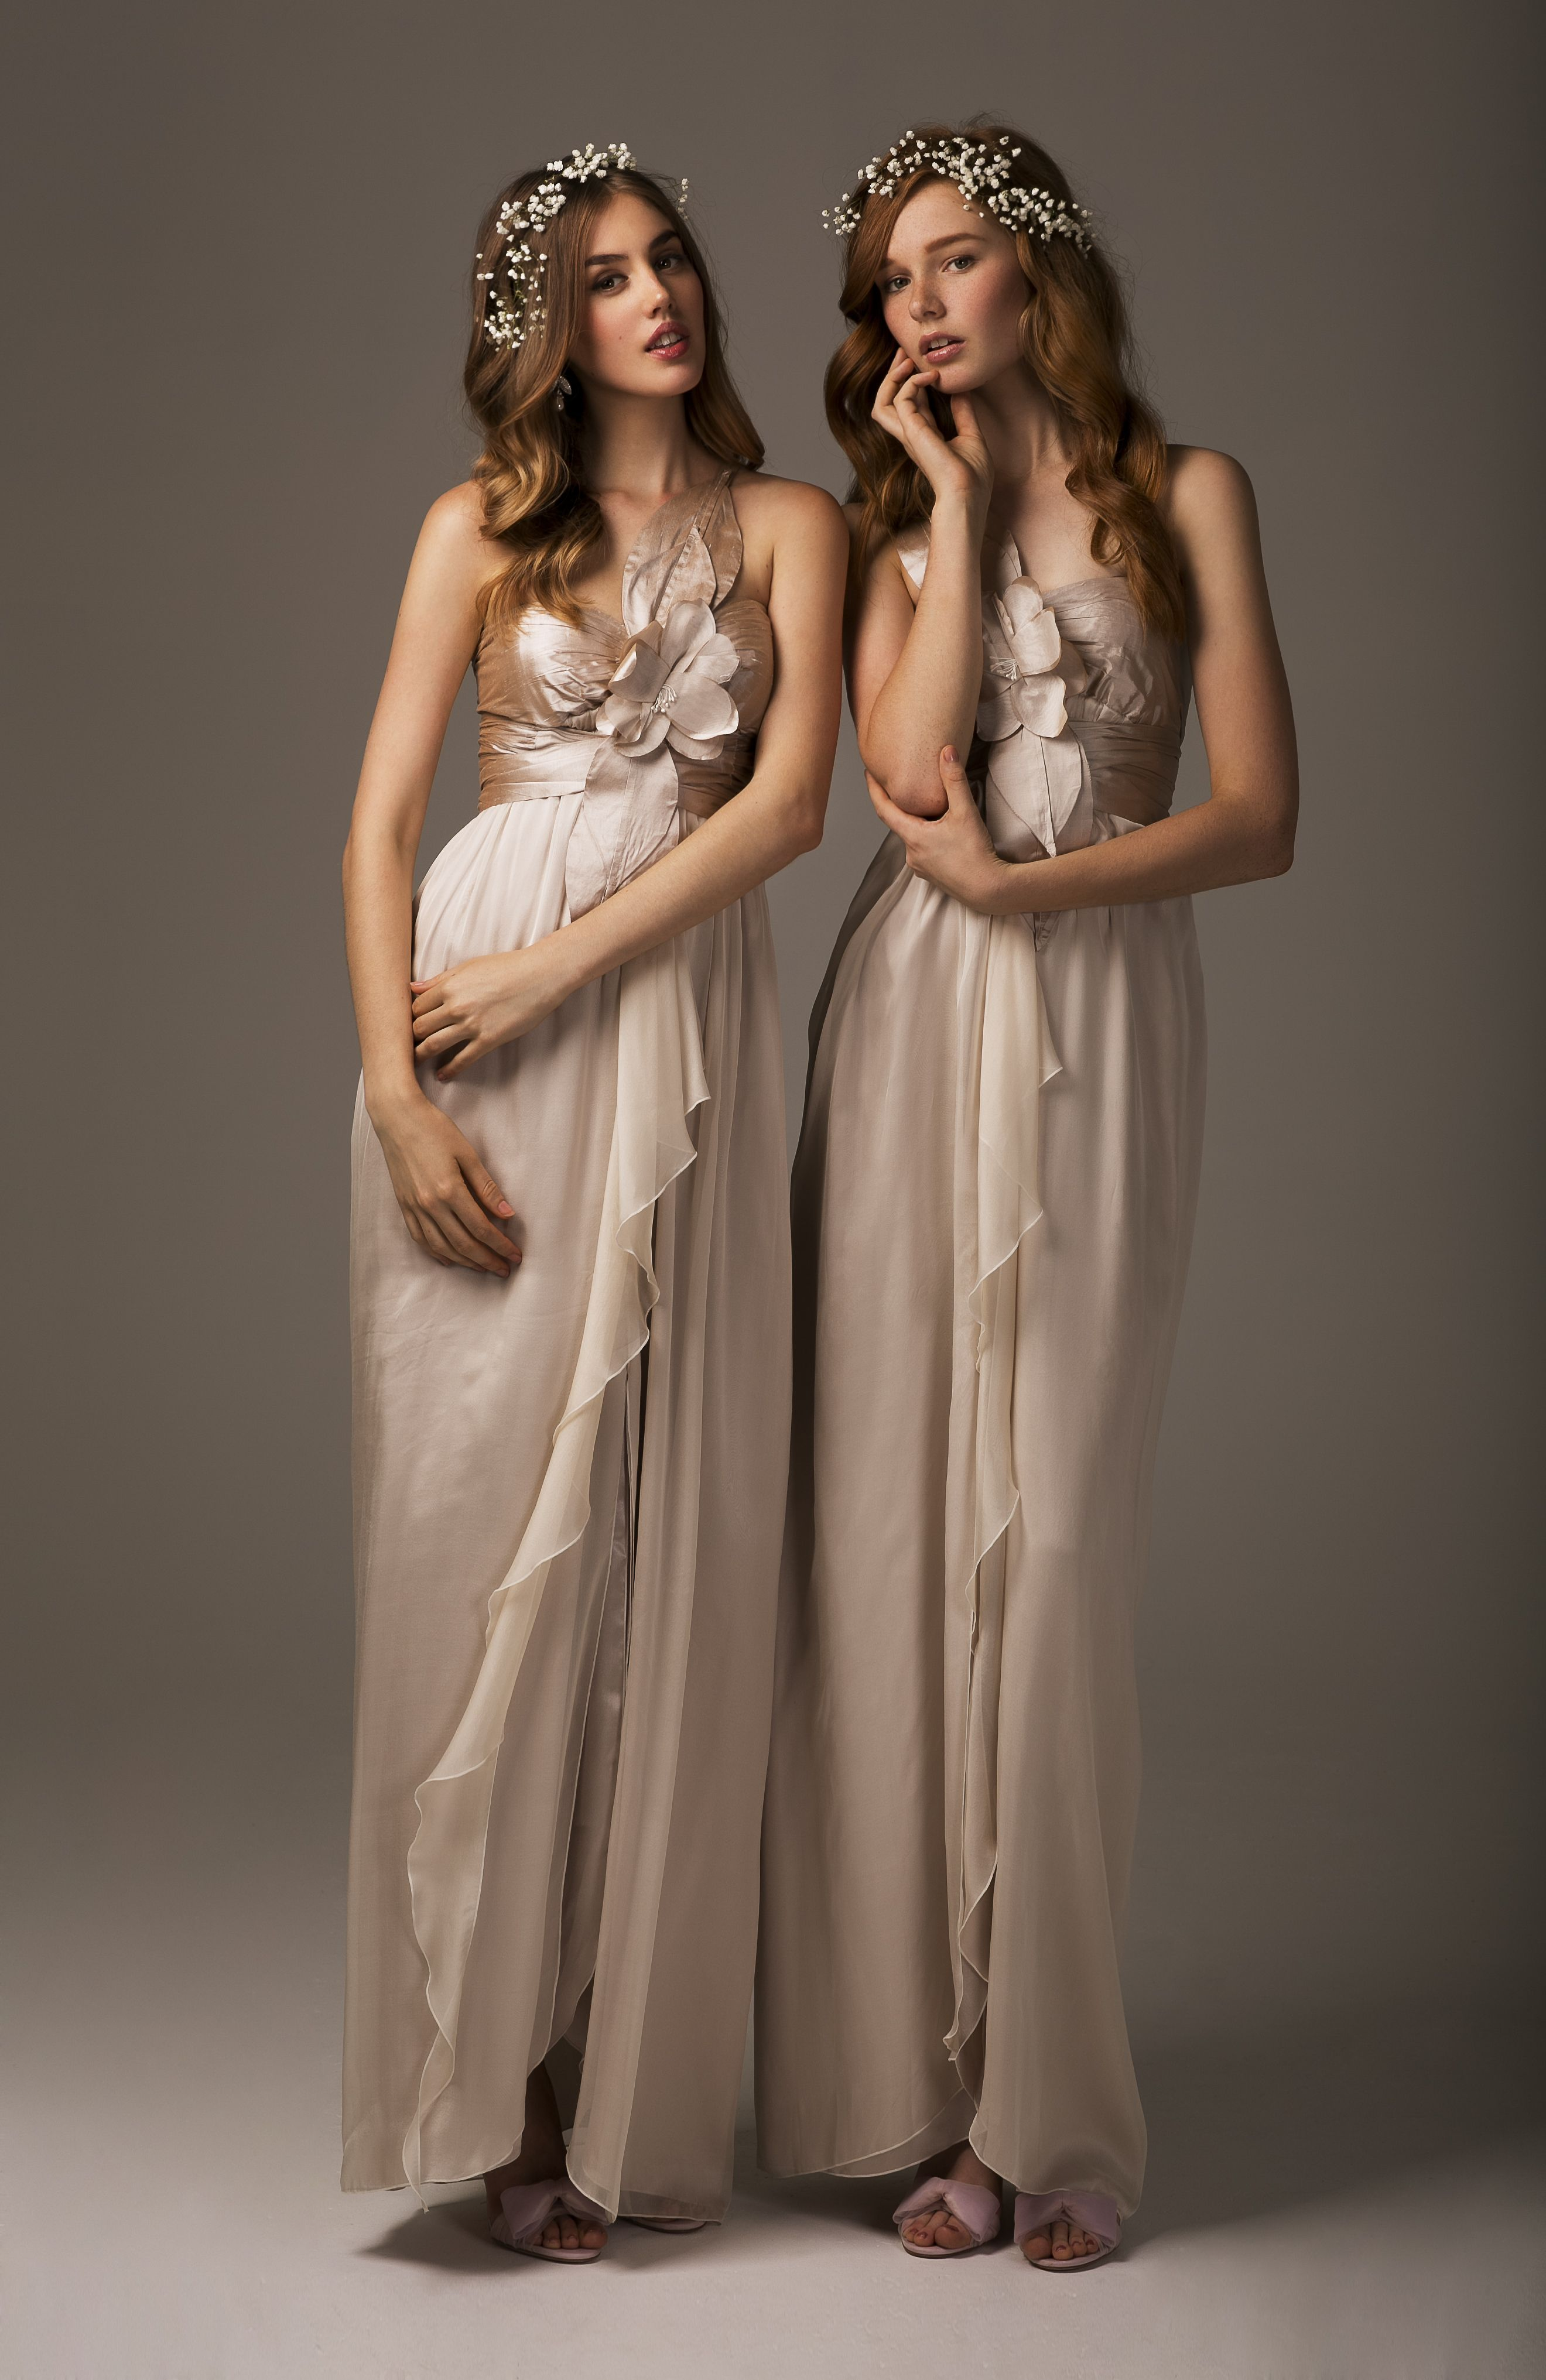 Bridesmaids anna campbell the seaweed is always greener bridesmaids anna campbell ombrellifo Images